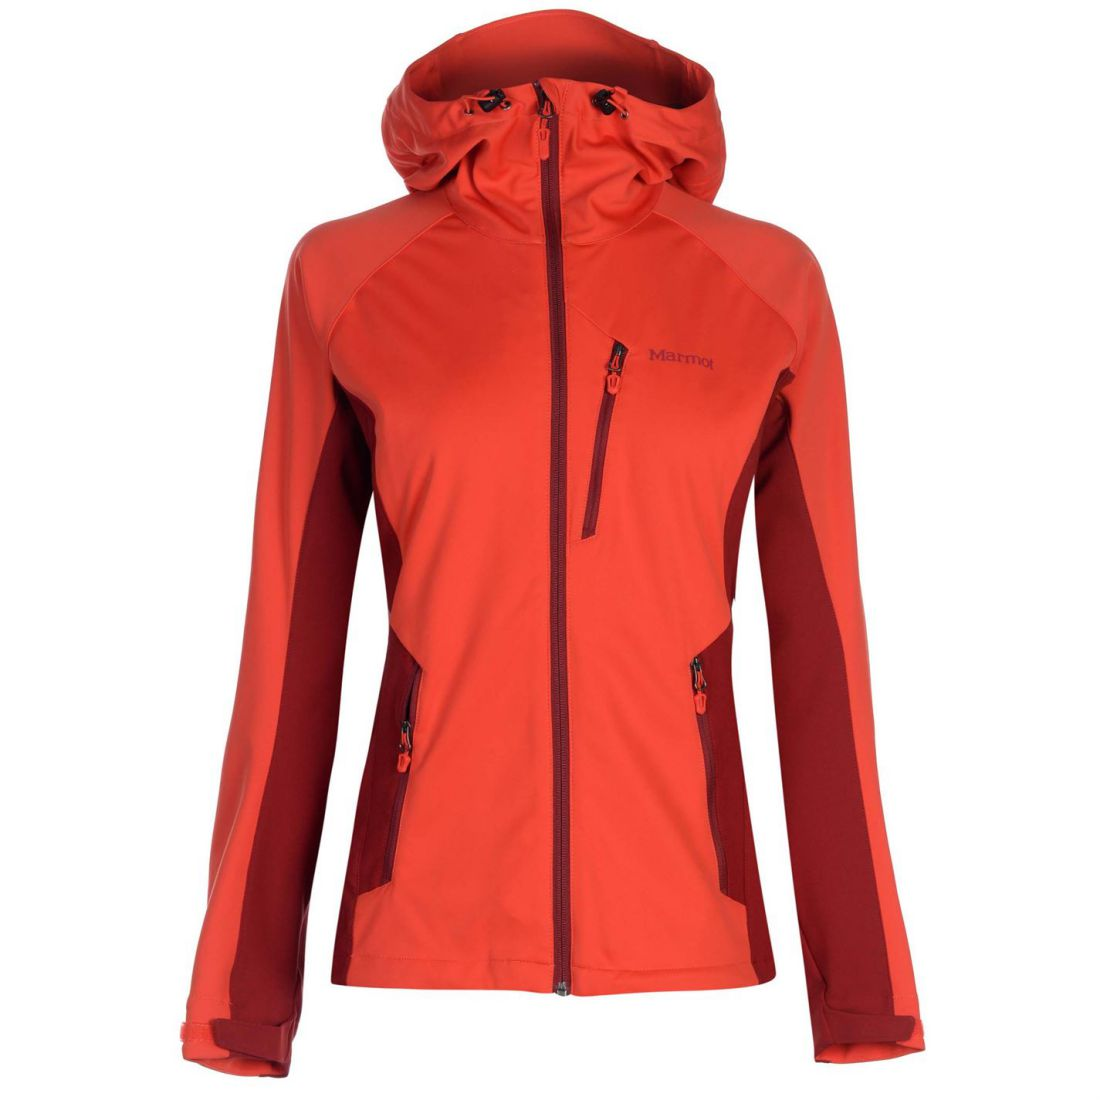 be7f4f6c Details about Marmot Womens ROM Jacket Waterproof Coat Top Windproof Water  Resistant